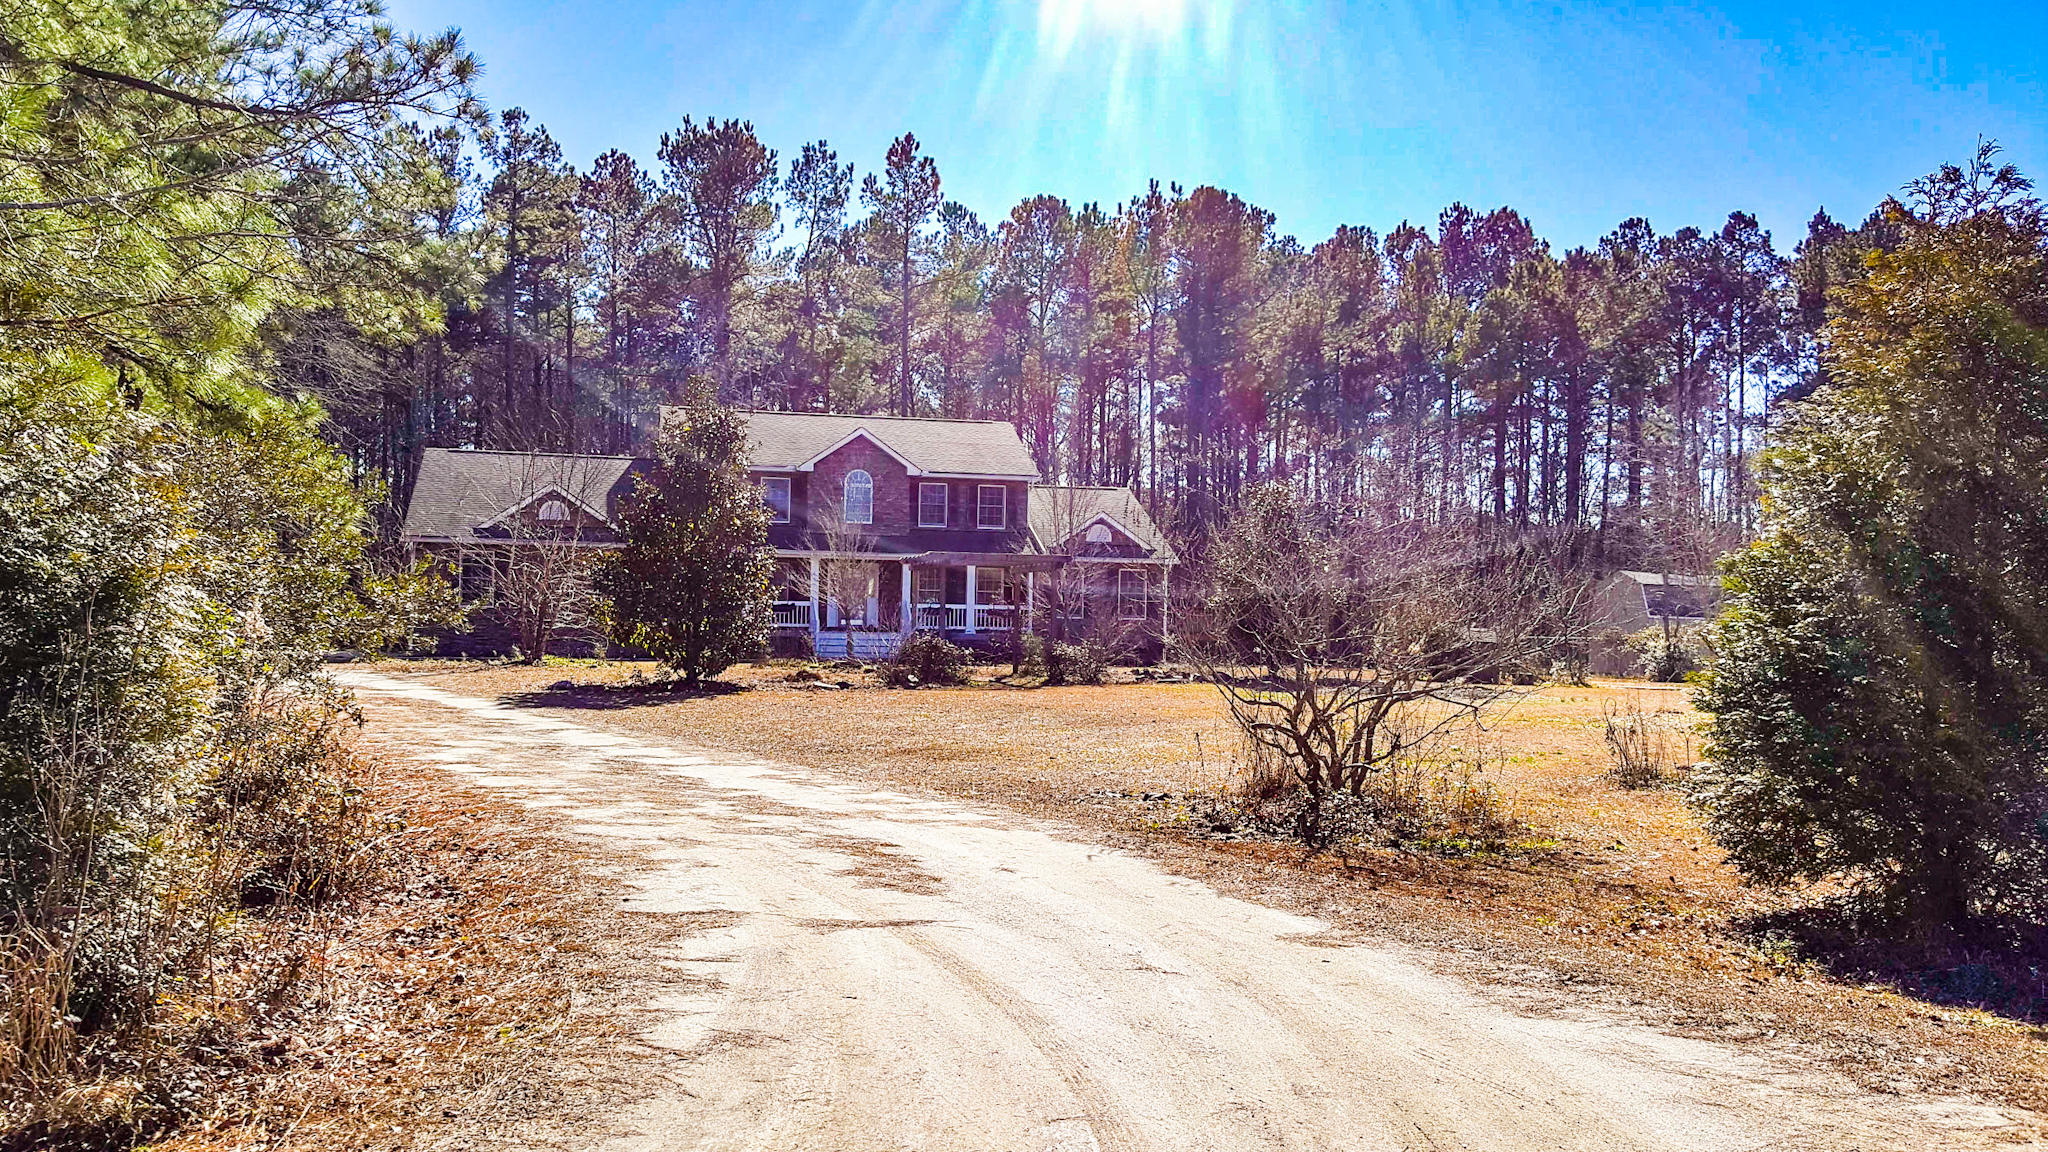 Photo of 817 Blooming Dale Ln, Pinopolis, SC 29469